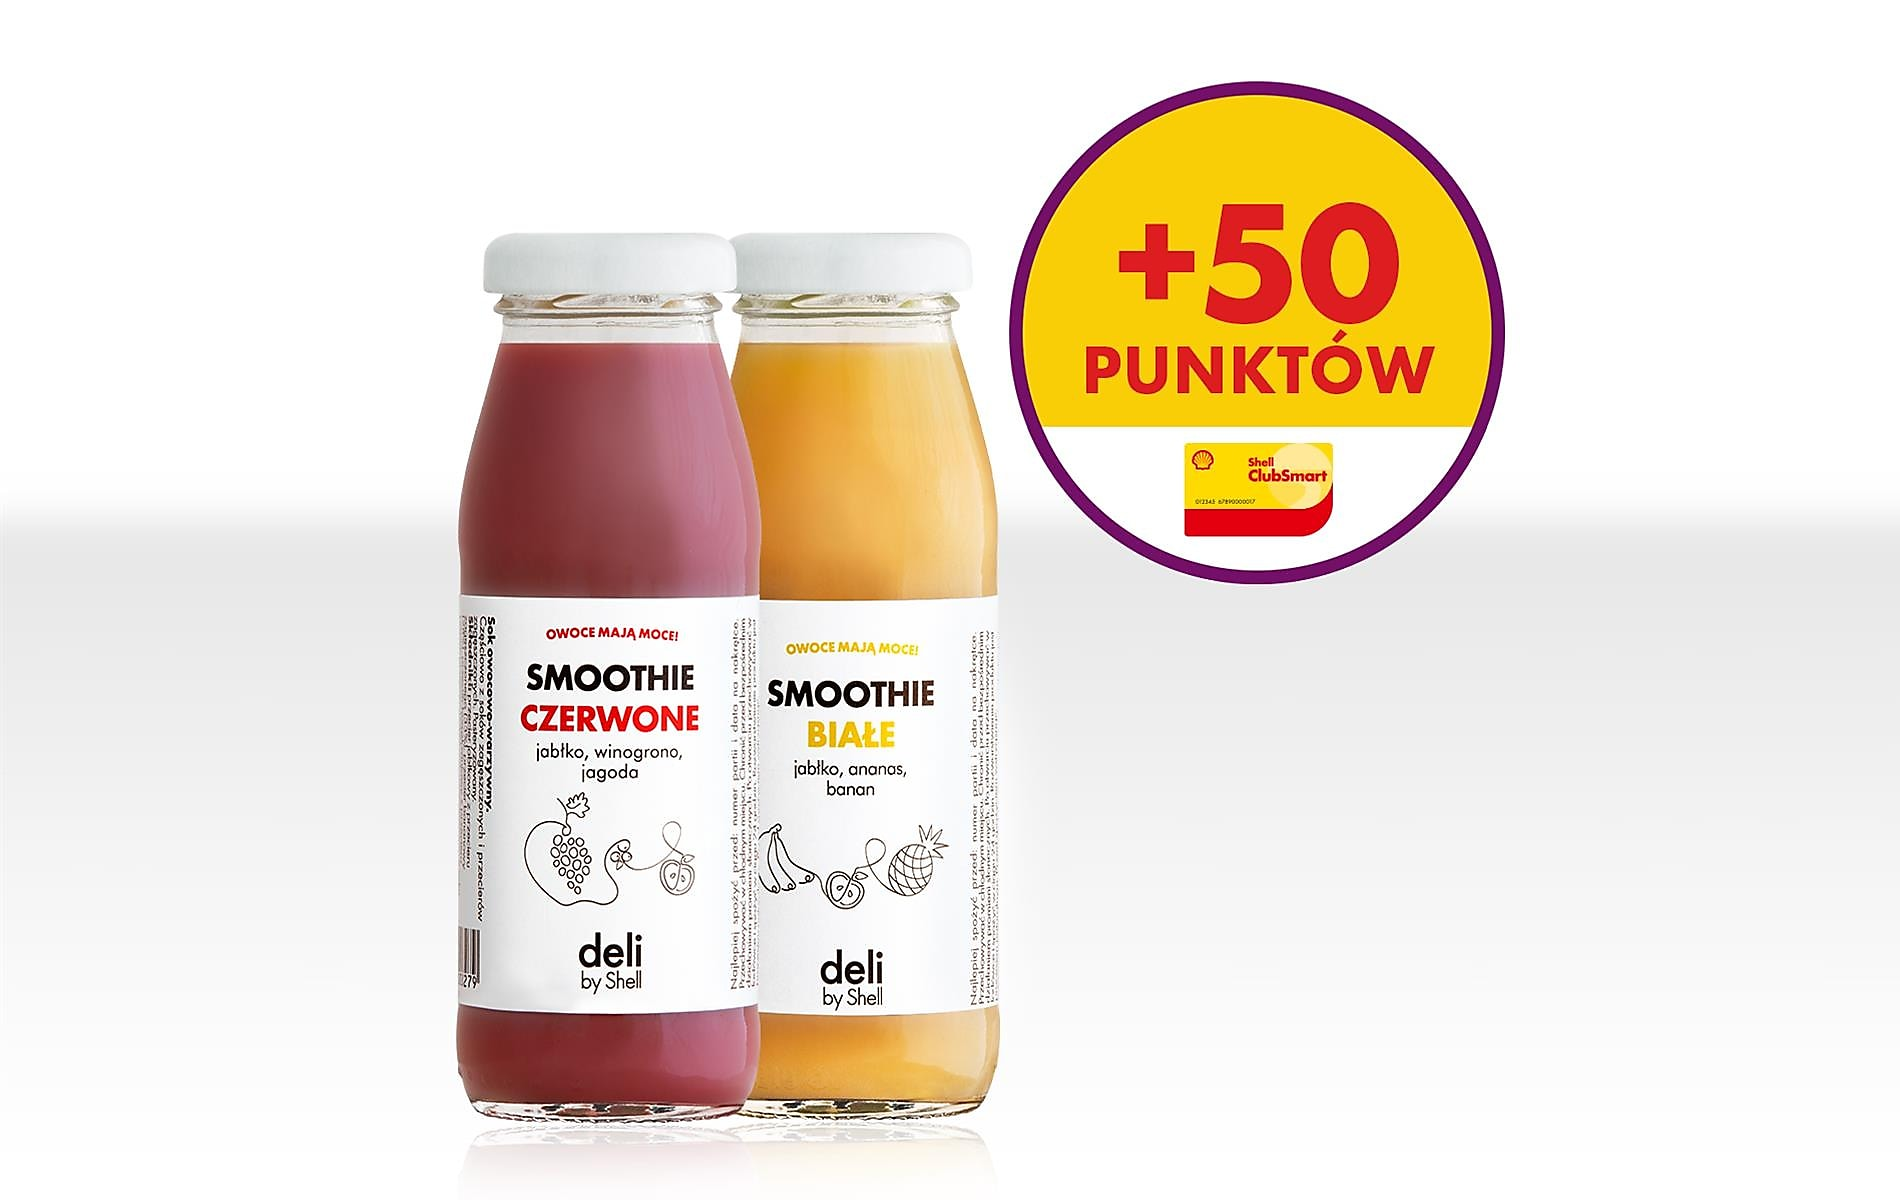 + 50 pkt za smoothies